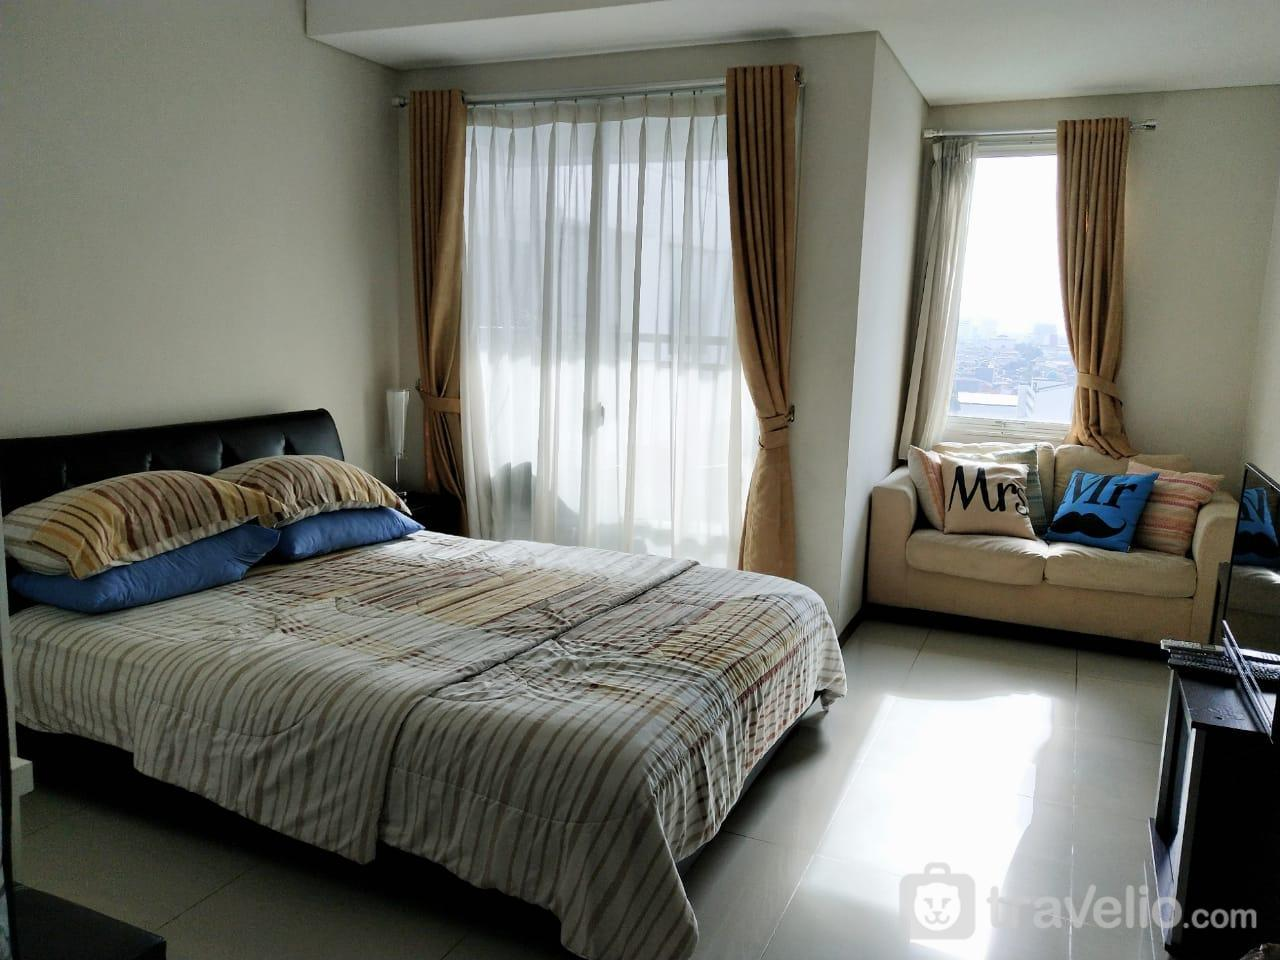 Thamrin Executive - Homey Studio @ Thamrin Executive Residence